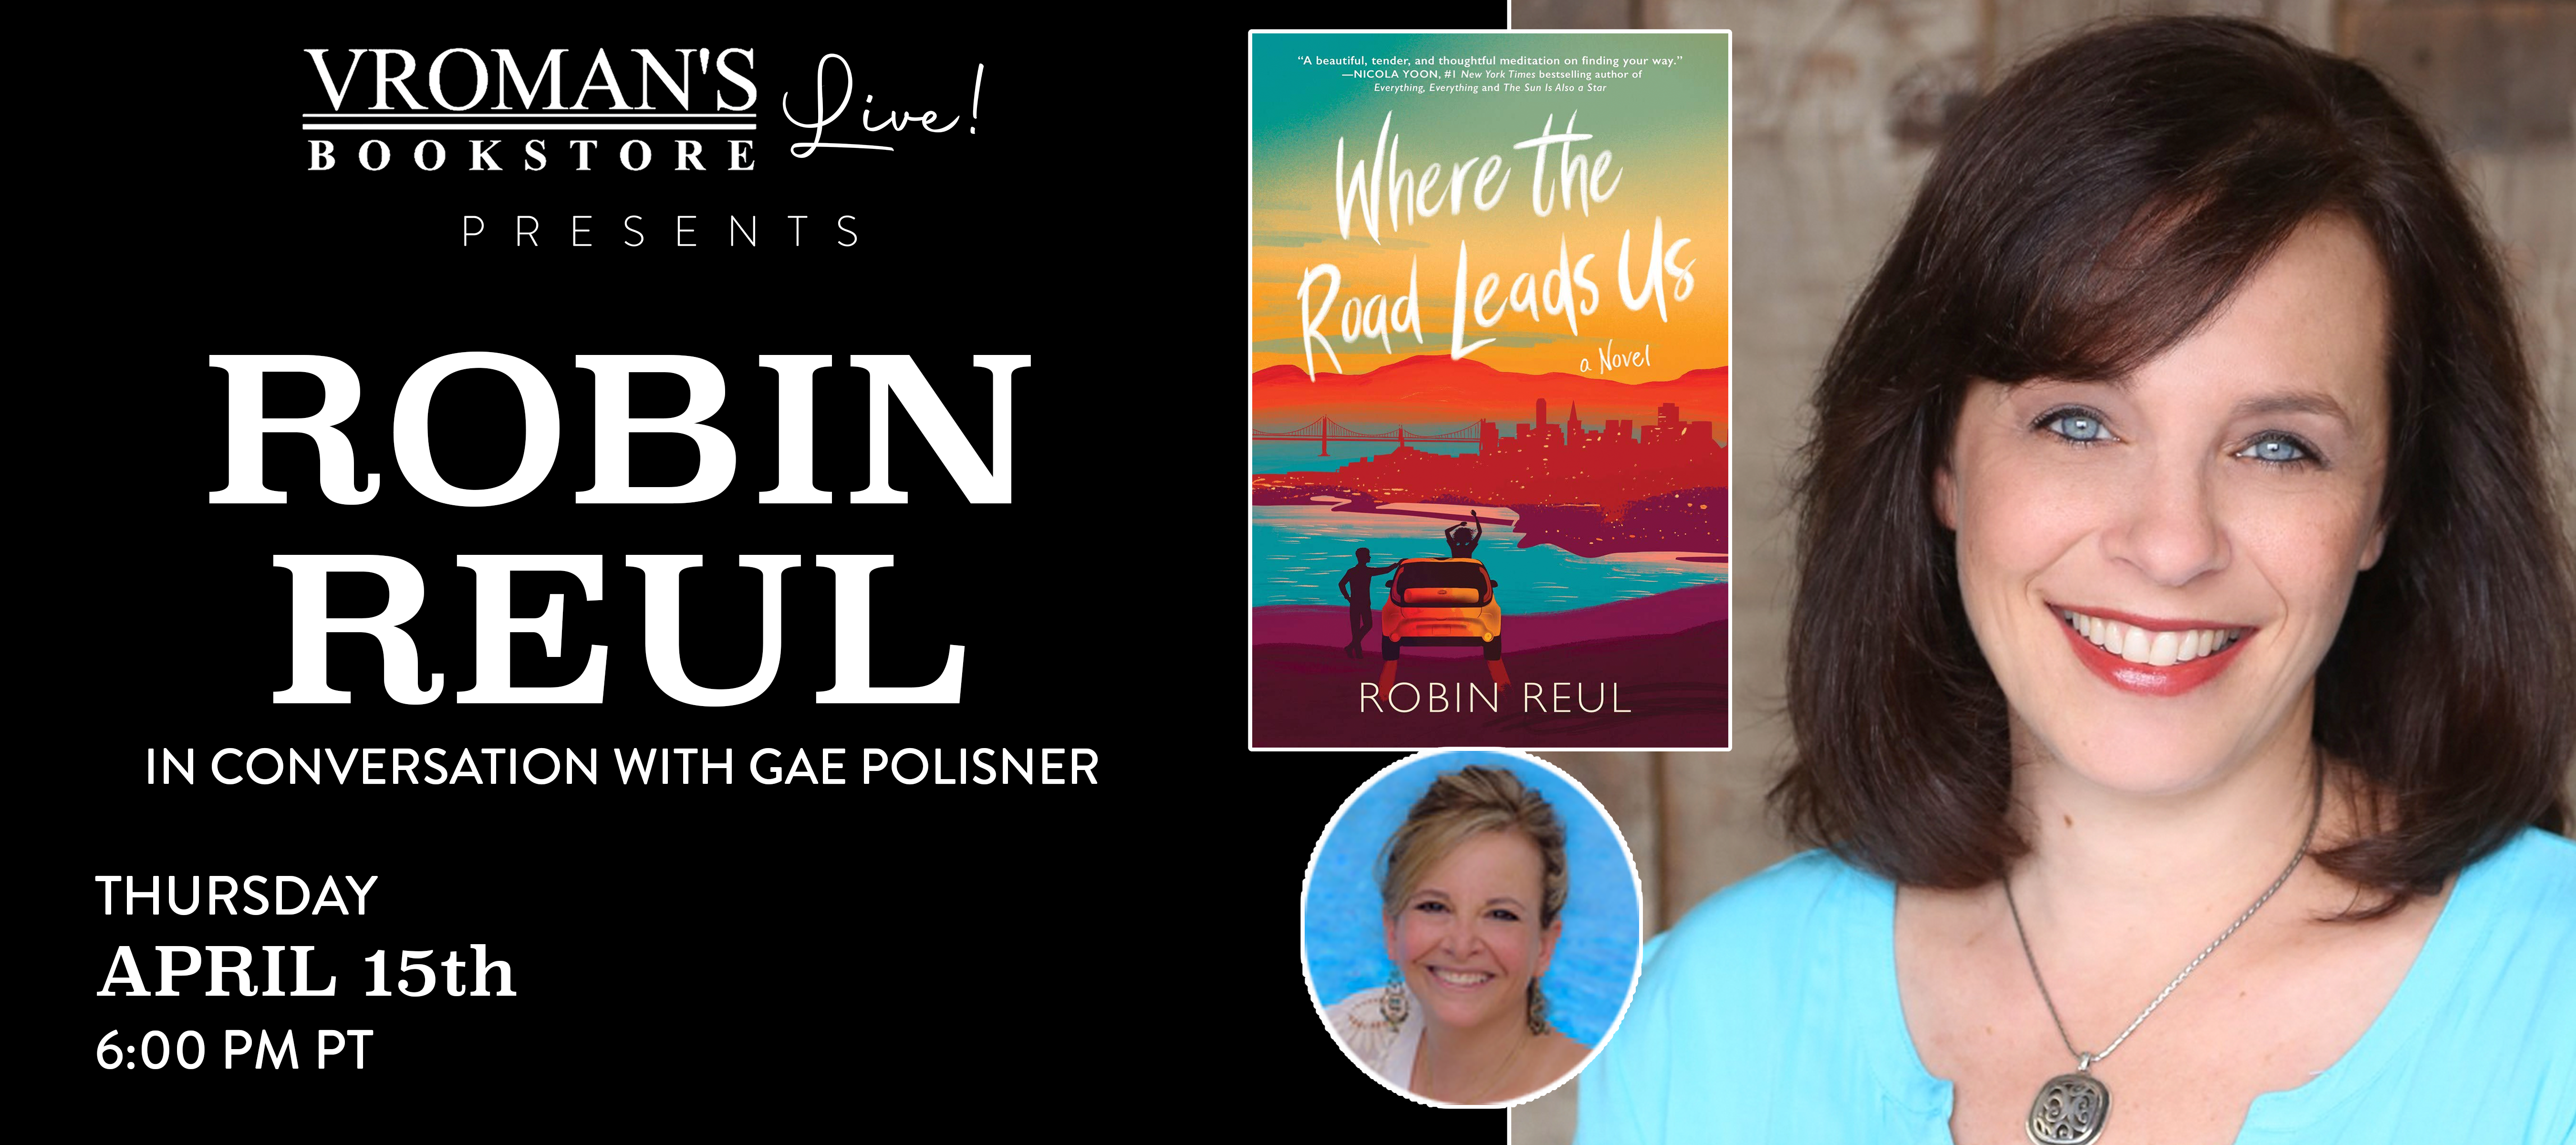 Robin Reul, in conversation with Gae Polisner, on Thursday April 15 at 6pm